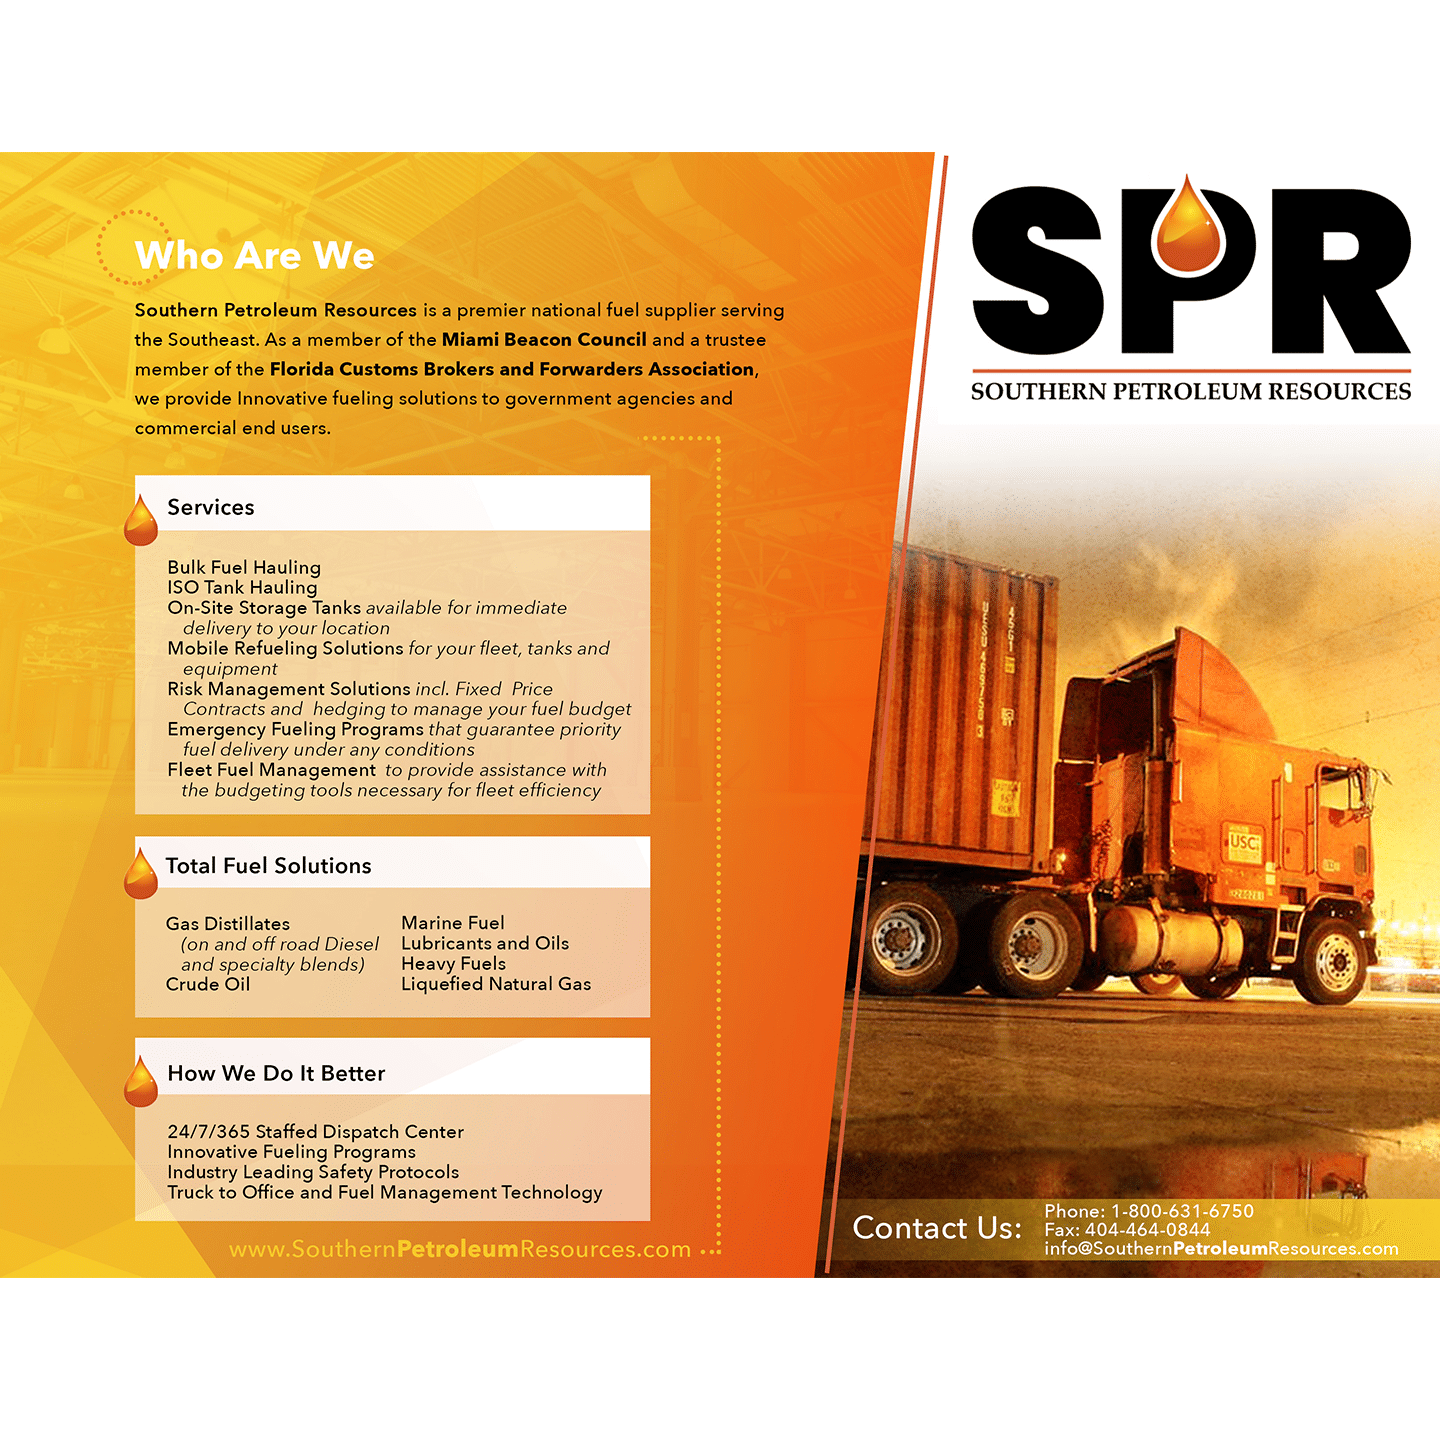 SPR brochure design